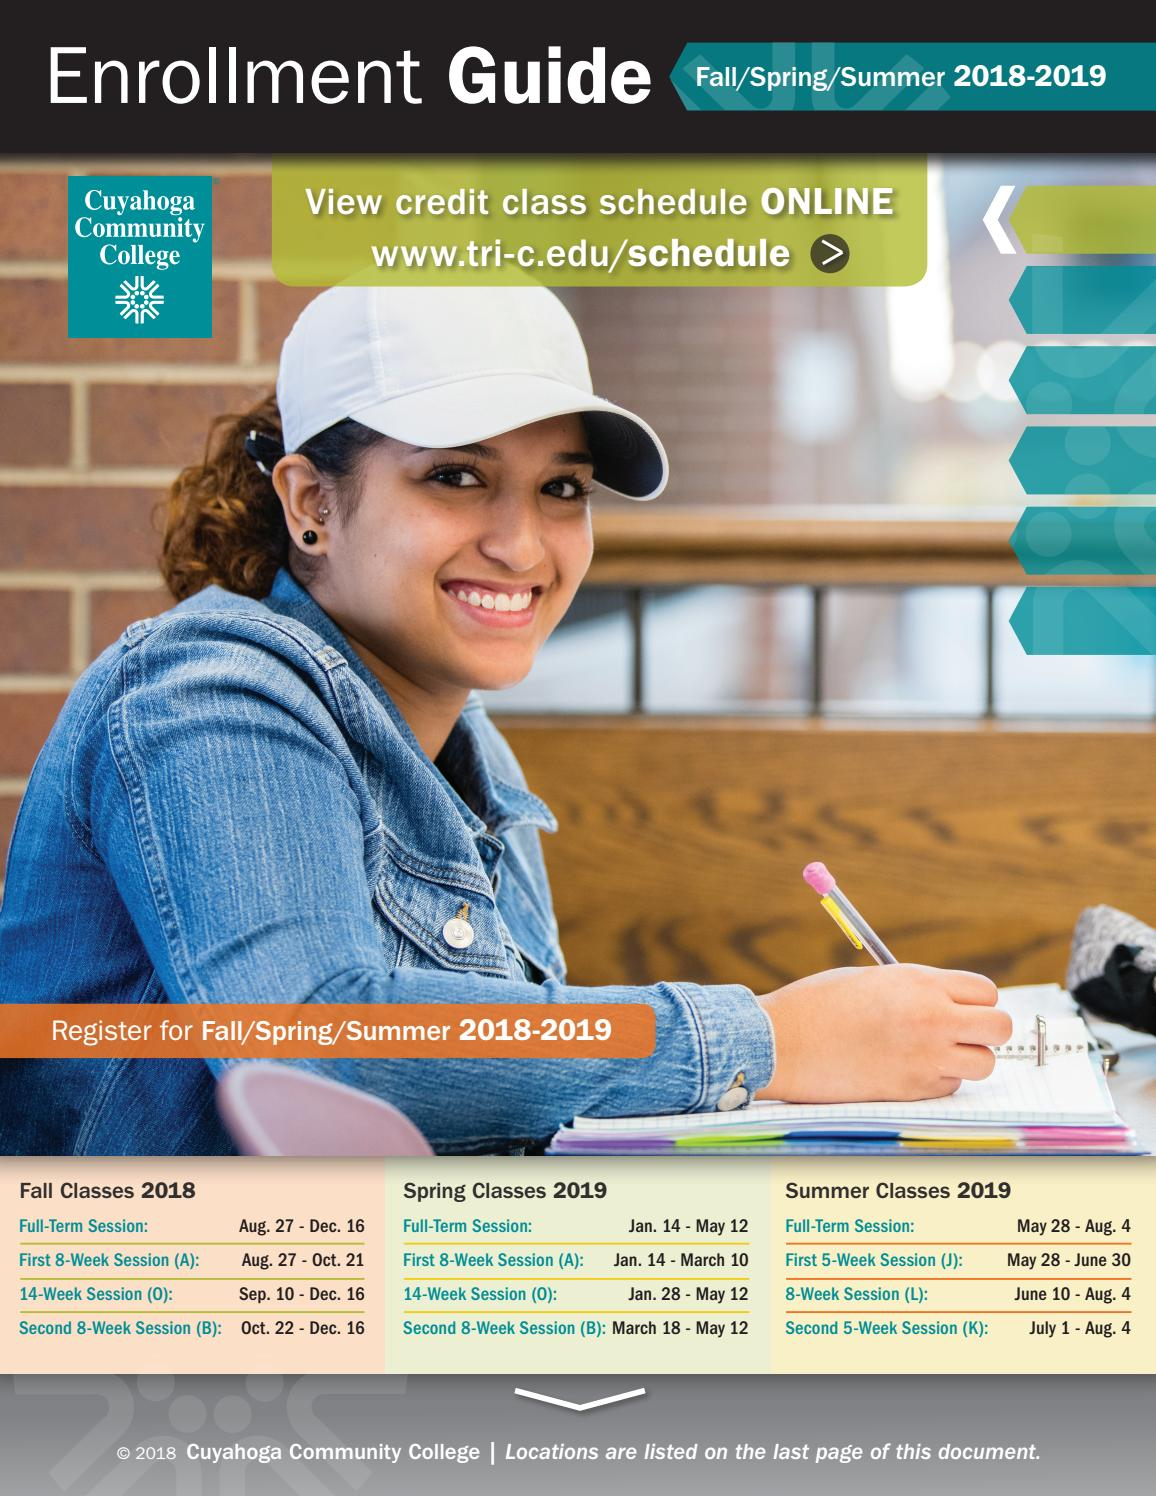 Enrollment Guide 2018-2019 by Cuyahoga Community College - issuu